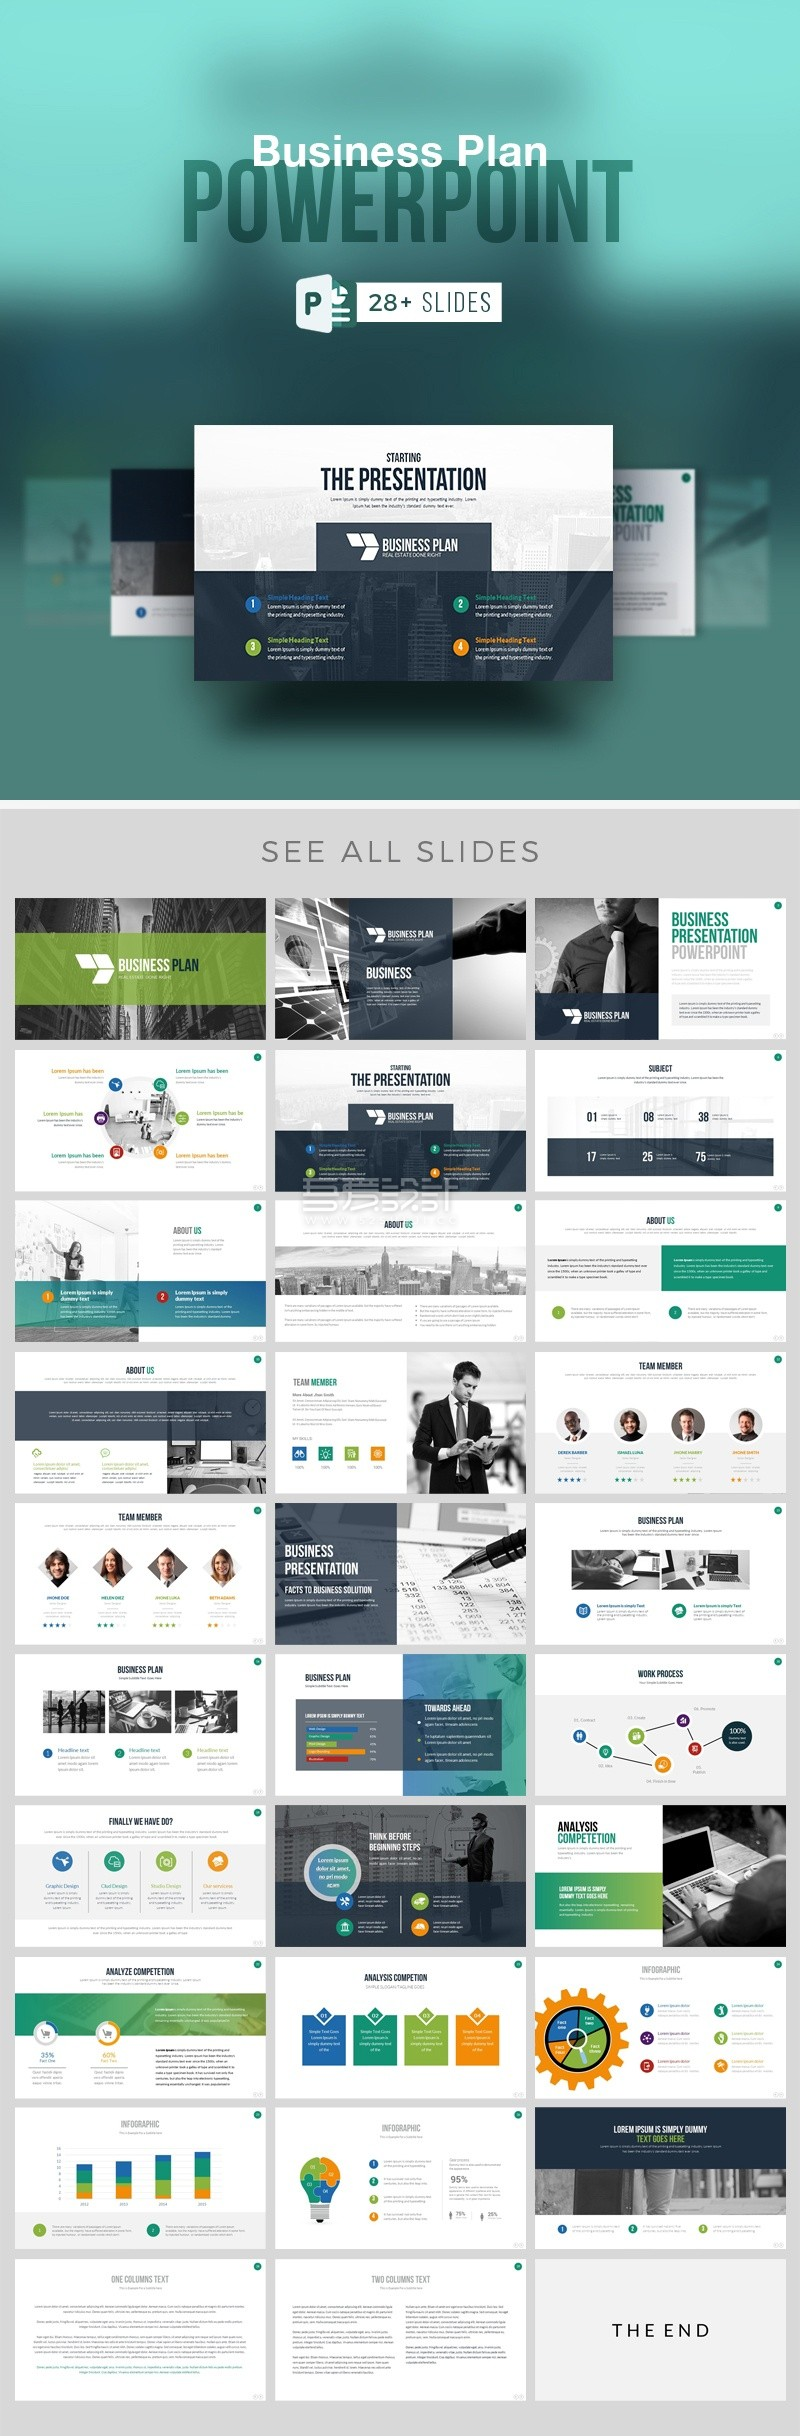 business-plan-powerpoint-presentationtemplate-1612-preview_a2